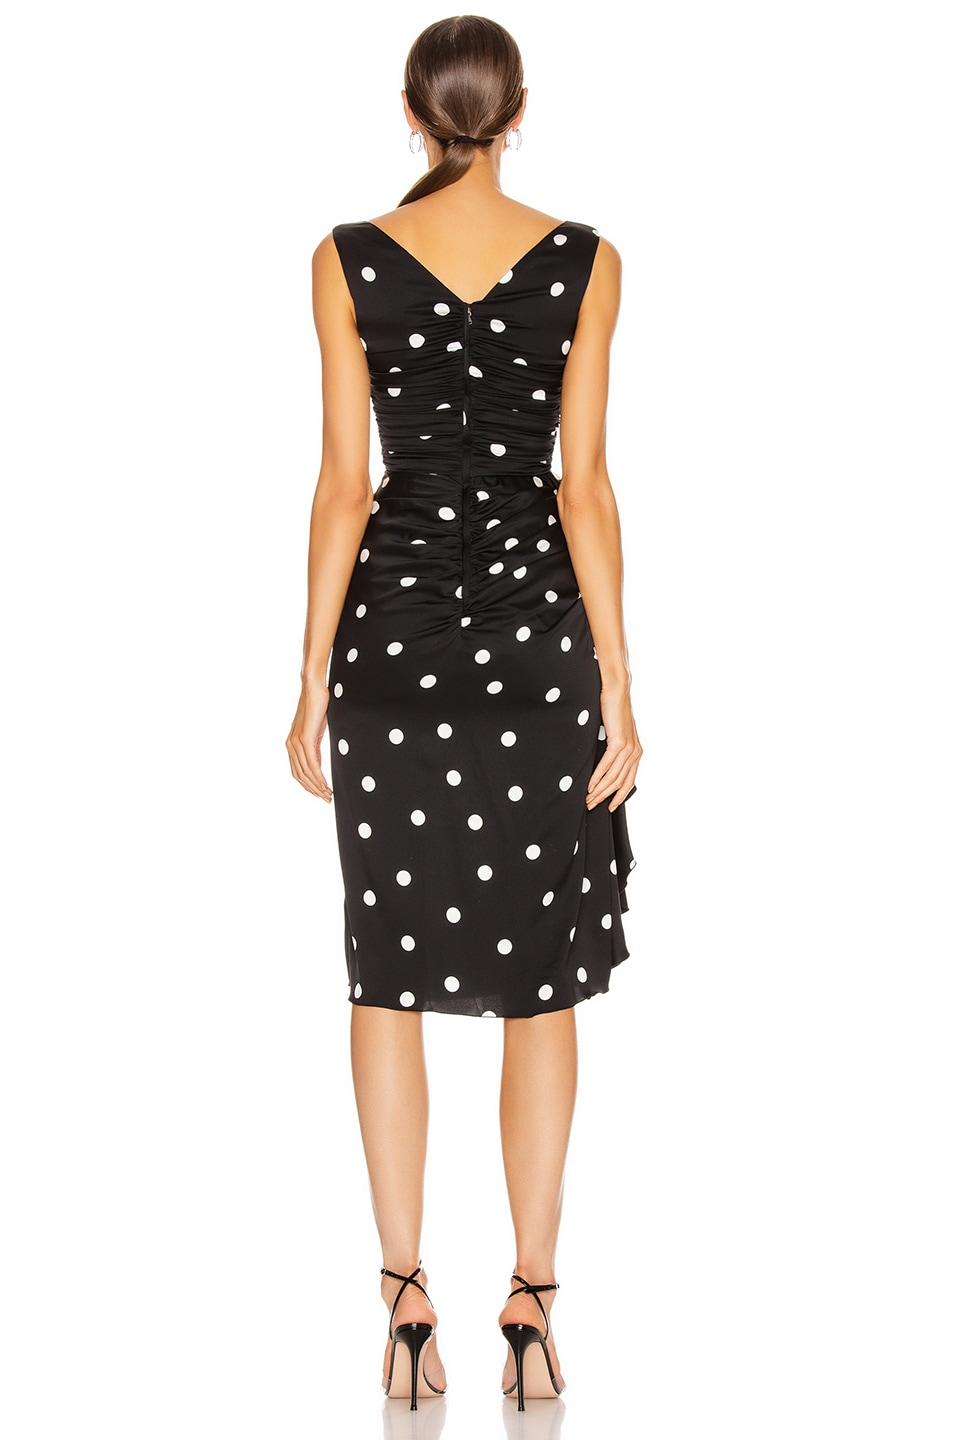 Image 4 of Dolce & Gabbana Polka Dots Dress in Black